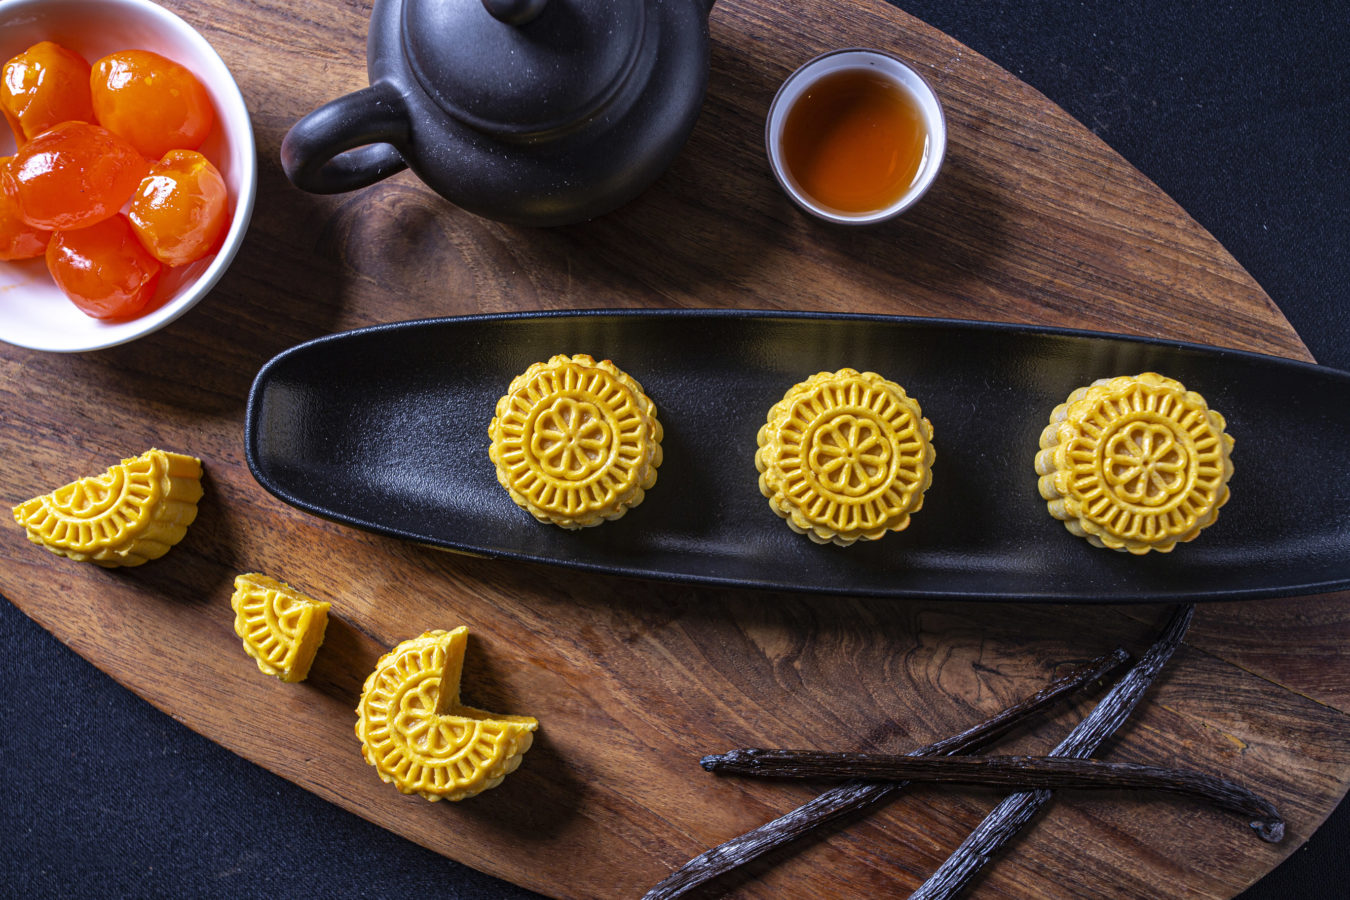 Where to find the best mooncakes in Bangkok